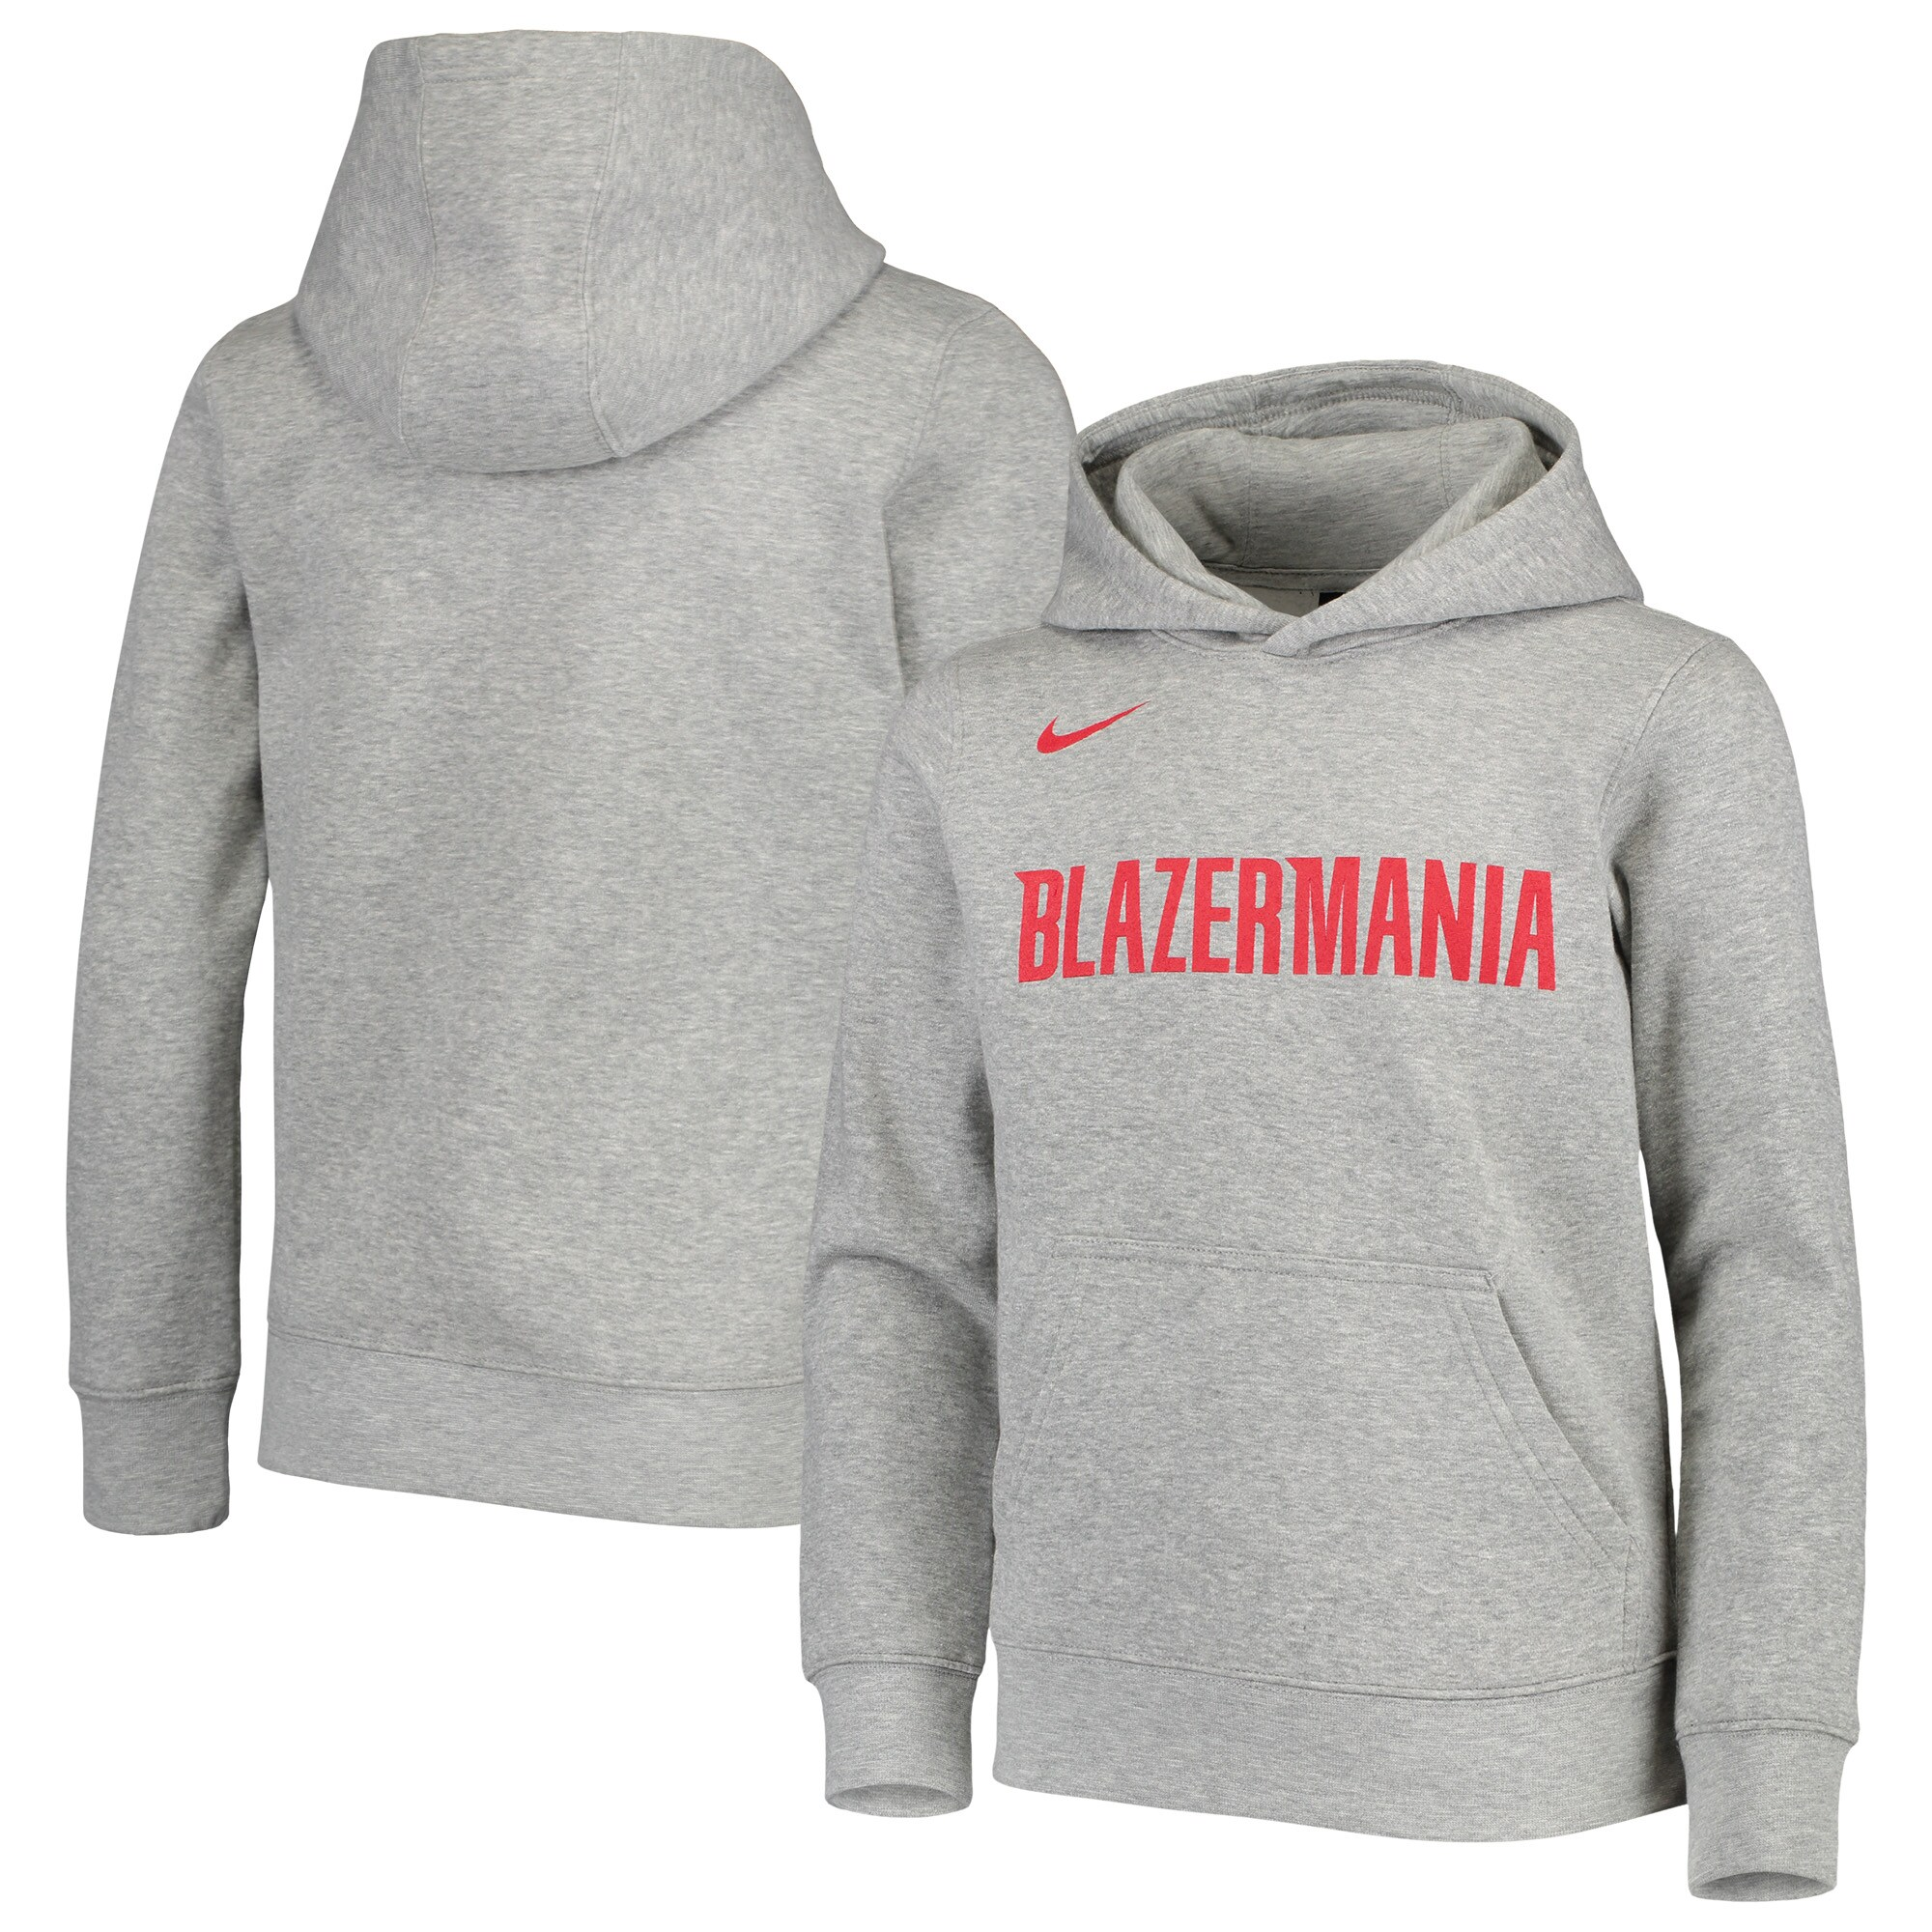 Portland Trail Blazers Nike Youth Earned Edition Logo Essential Pullover Hoodie - Heathered Gray